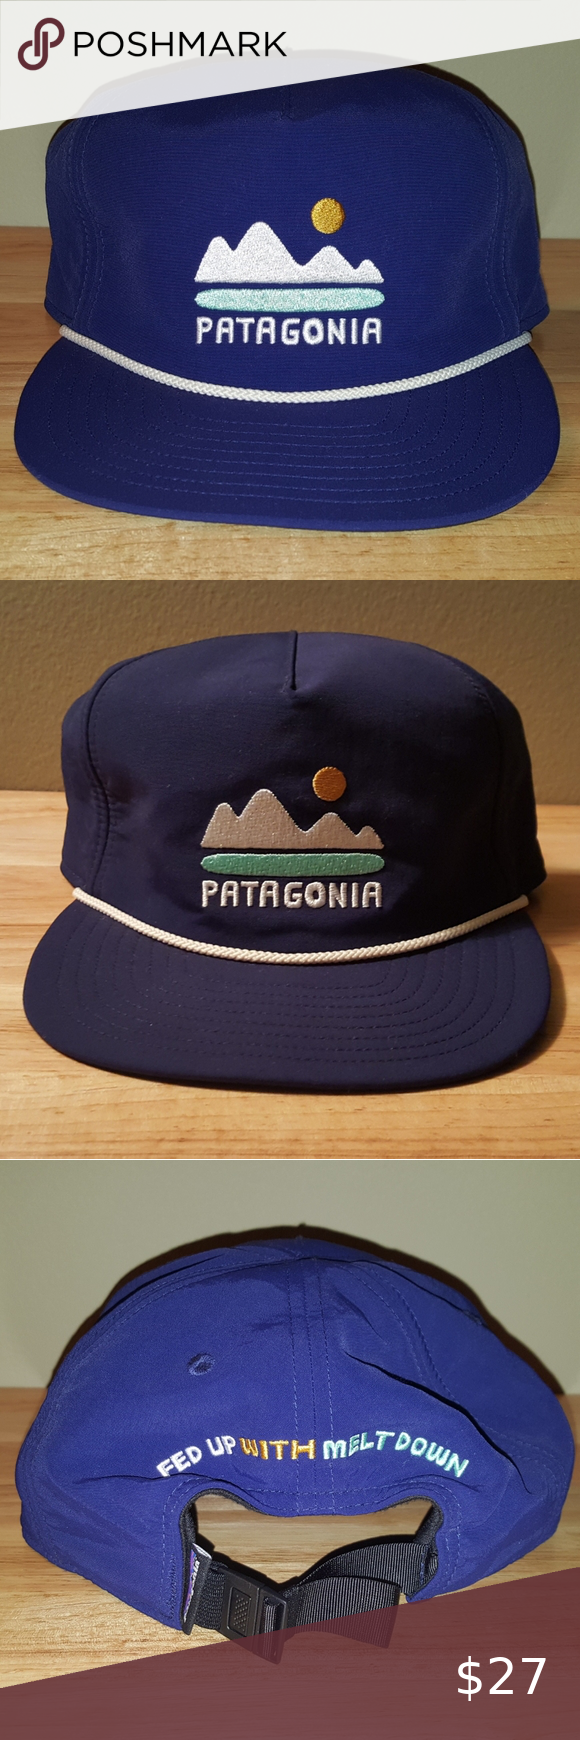 Patagonia Fed Up With Melt Down Strapback Hat Strapback Hats Patagonia Patagonia Mens